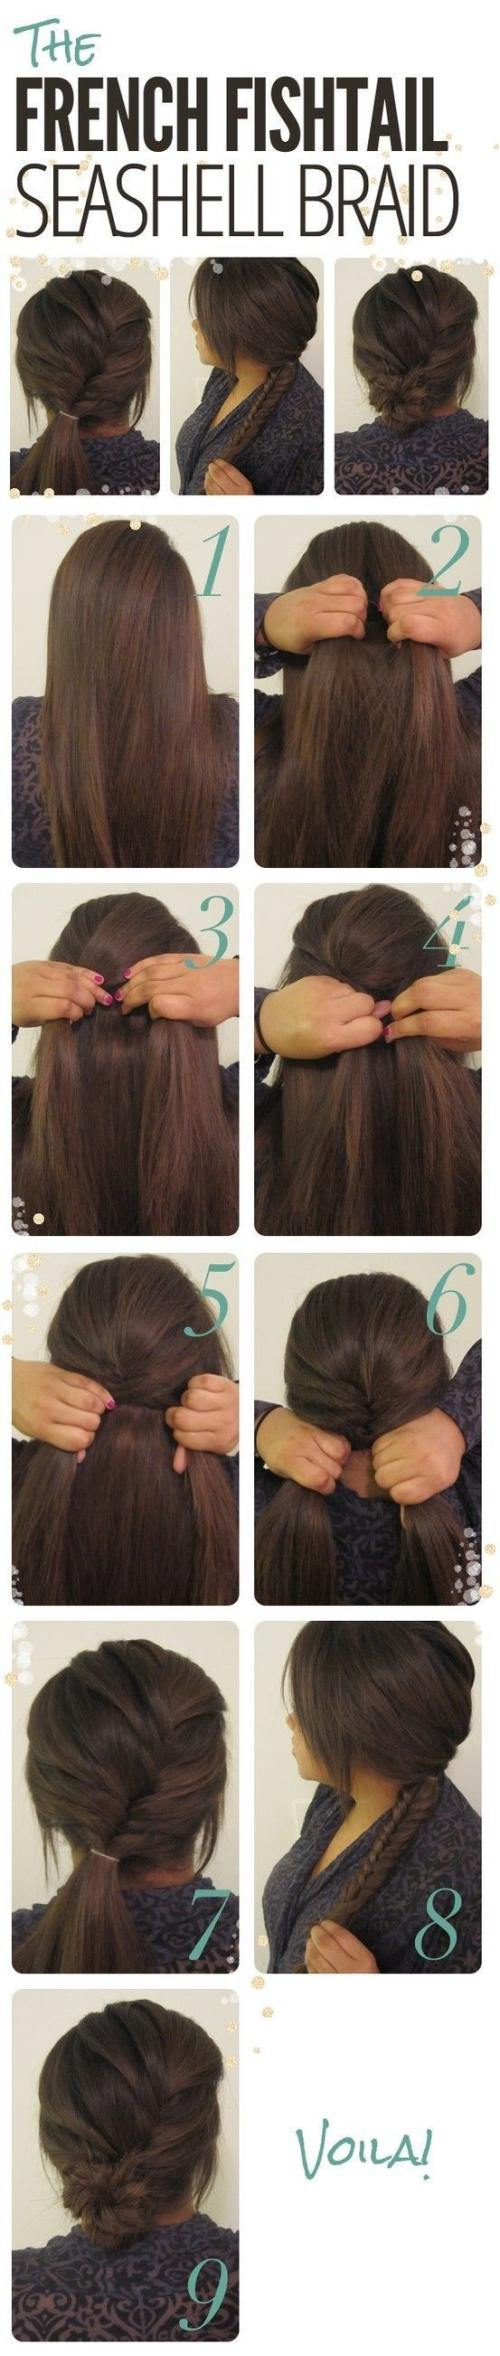 The French Fishtail Seashell Braid – Do It Yourself Hairstyle Ideas : theBERRY